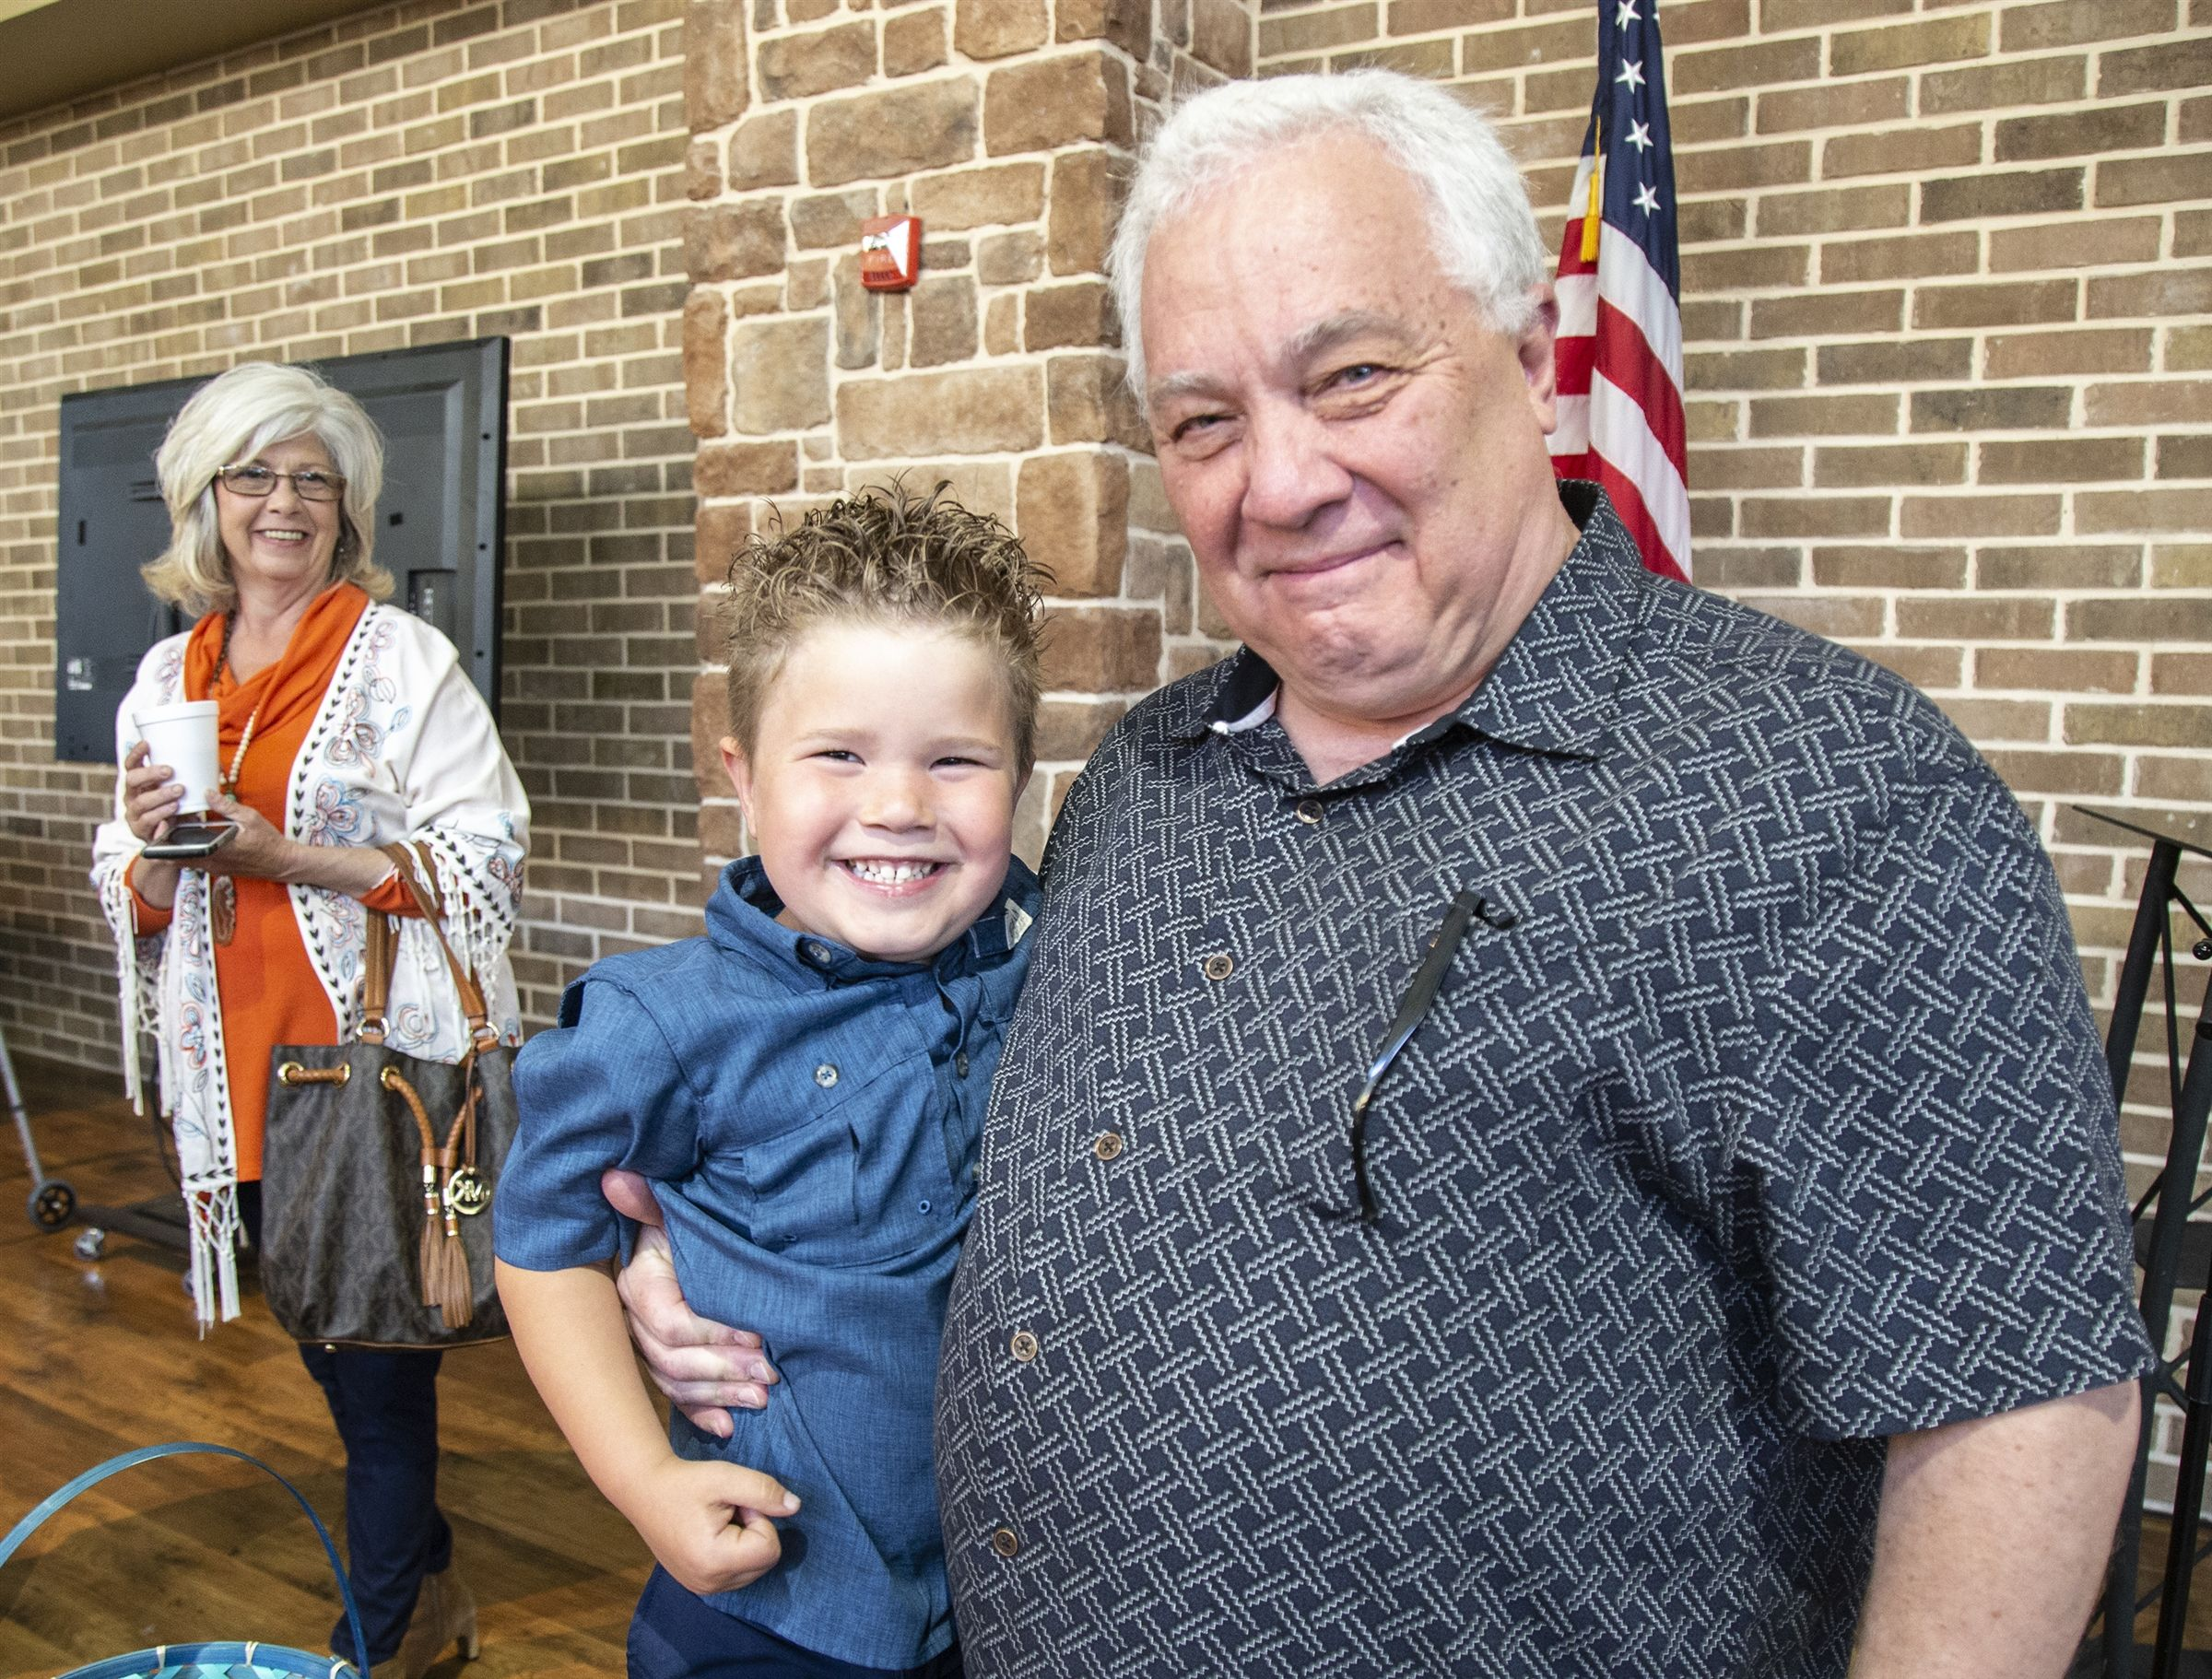 Both grandparents and grandchildren alike love Grandparents Day